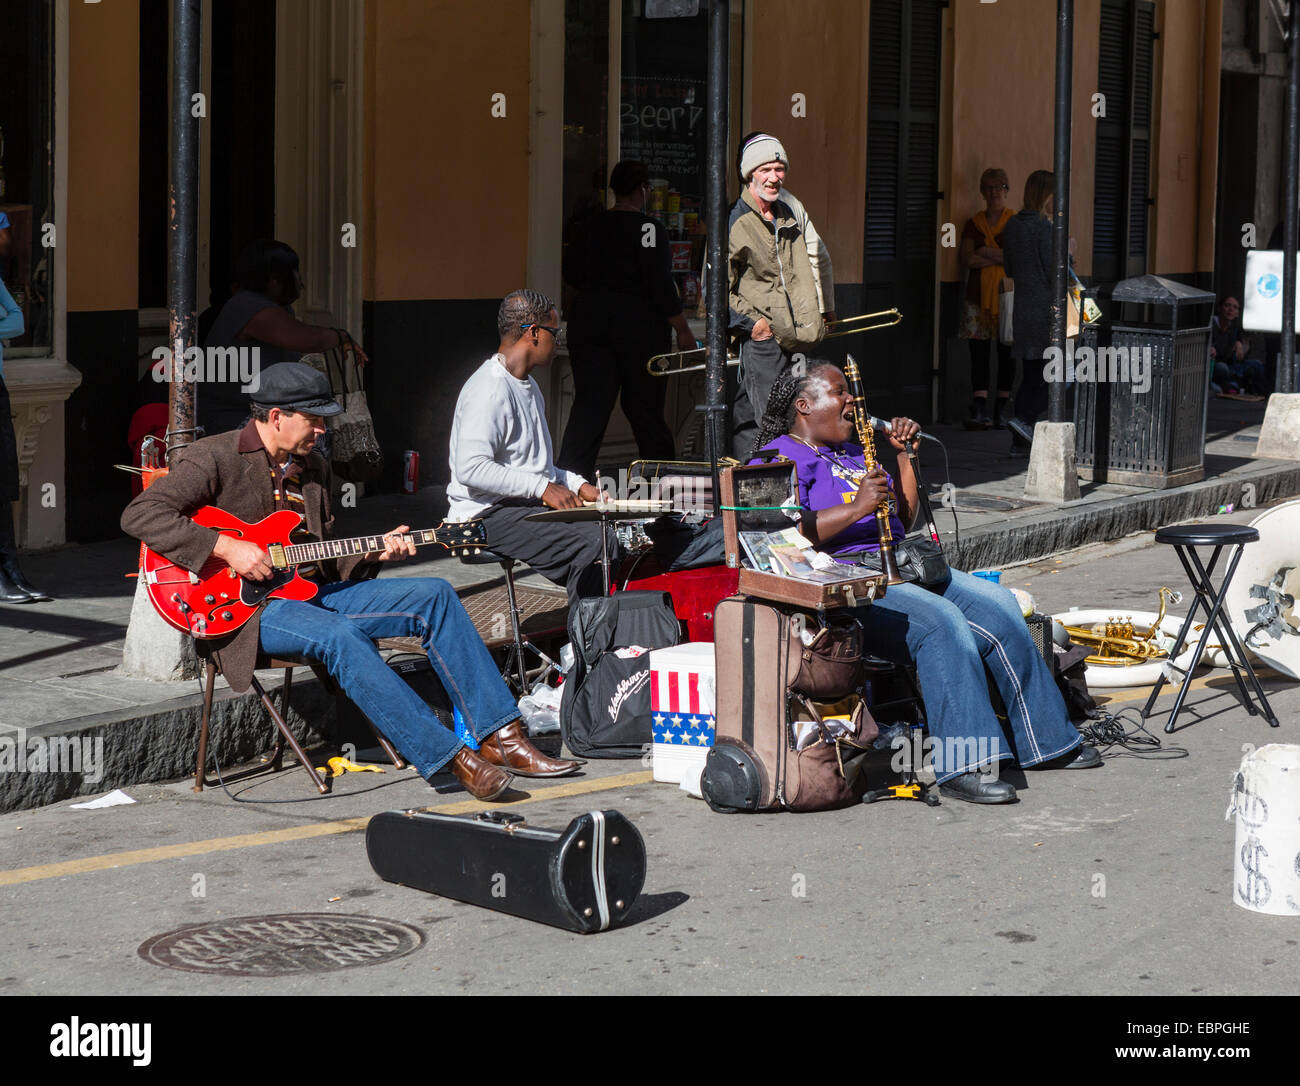 Musicians playing on Royal Street in the French Quarter, New Orleans, Louisiana, USA - Stock Image